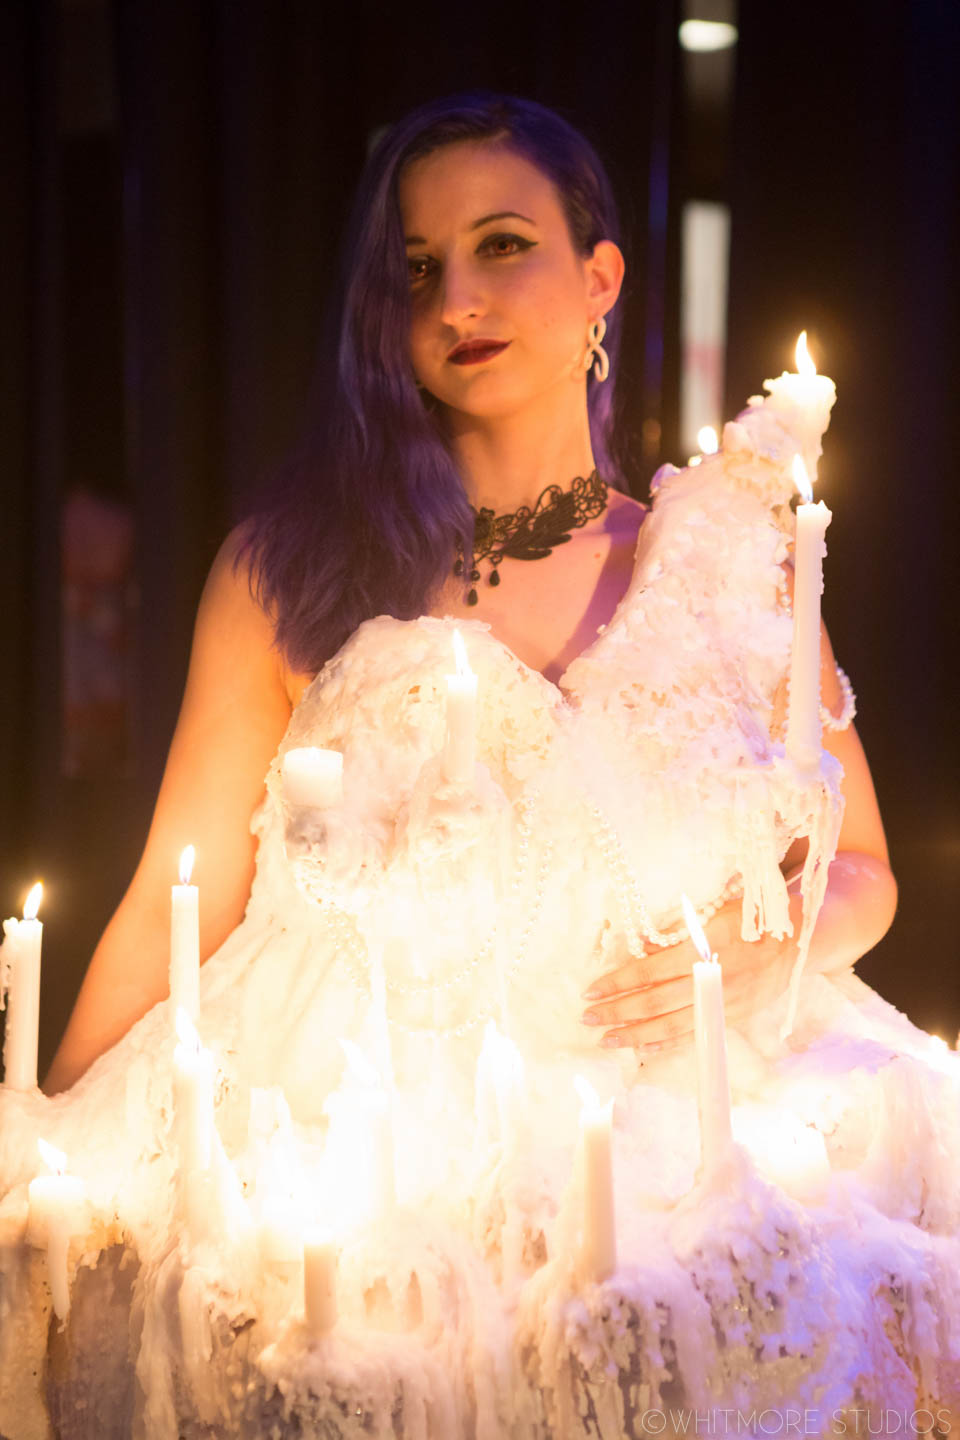 Candle Dress-Gown 2.jpg